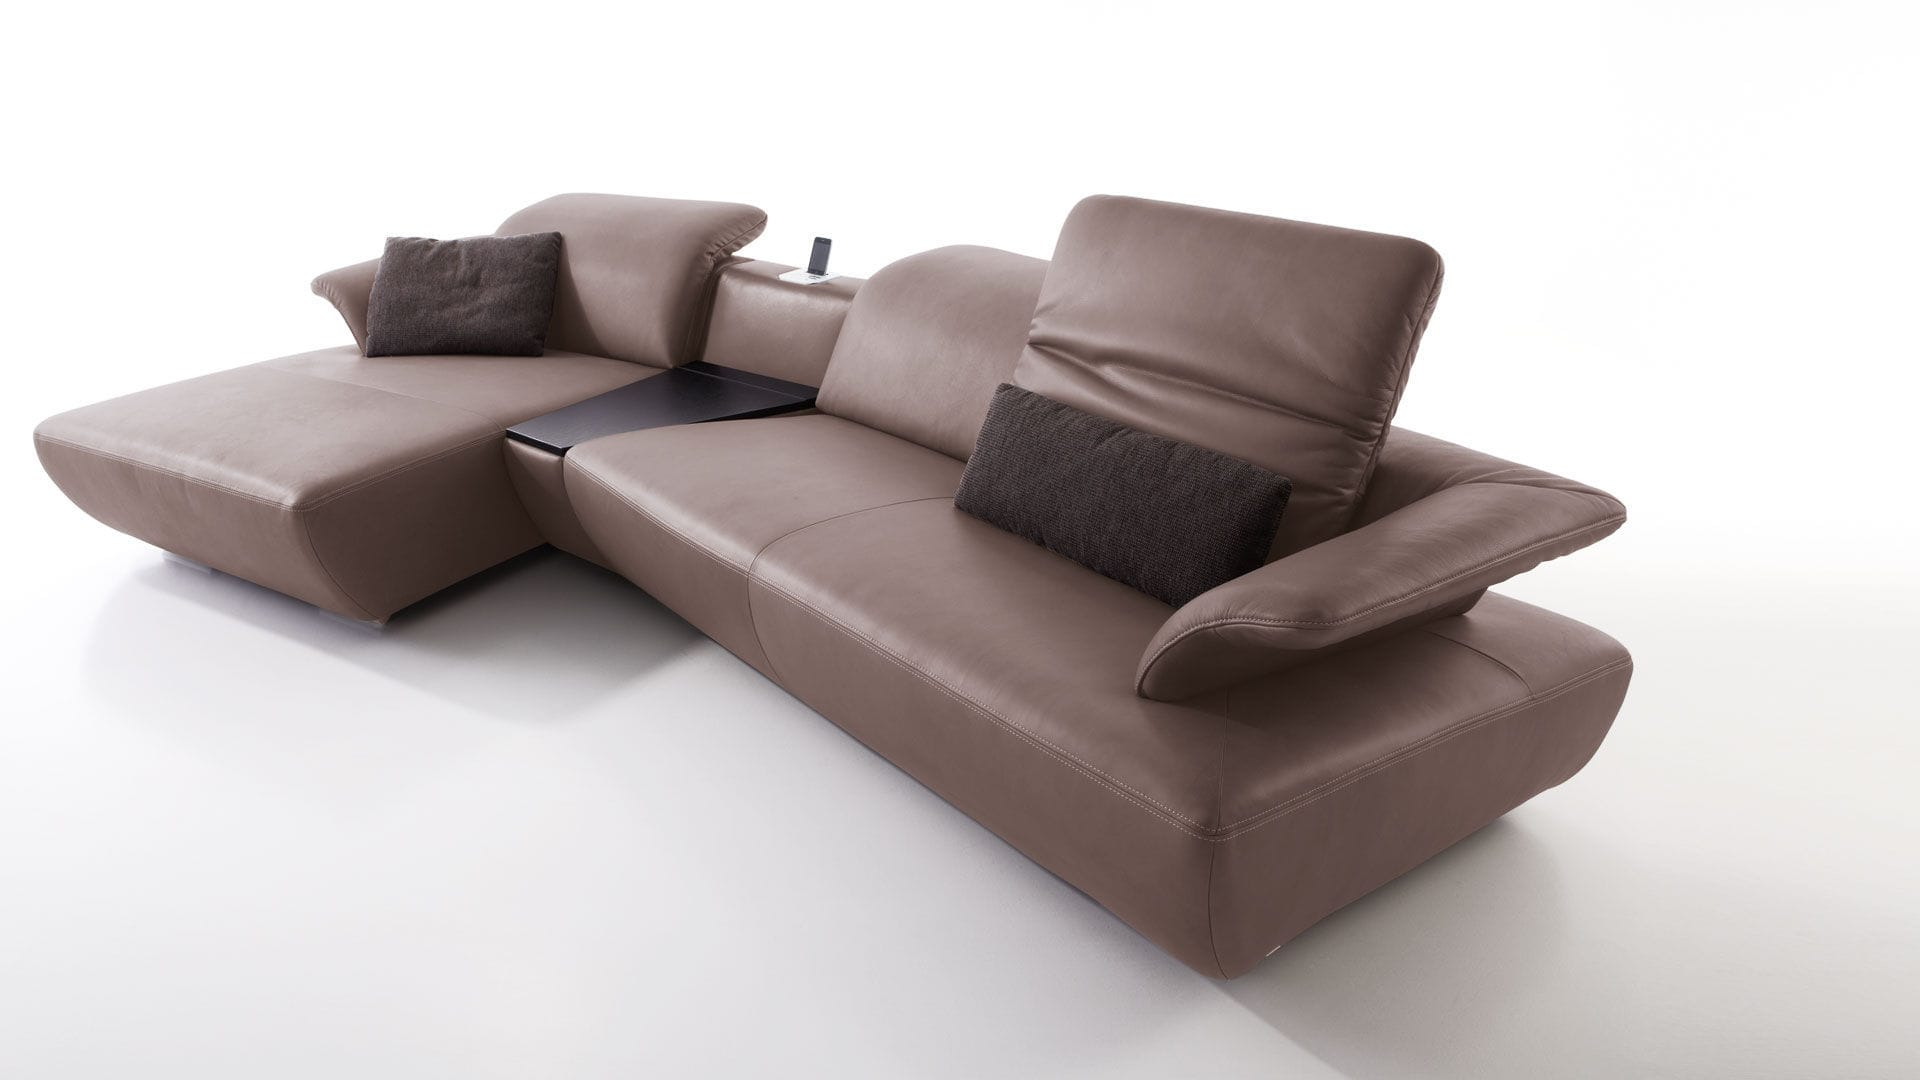 Faszinierend Koinor Lederfarben Beste Wahl Modular Sofa Contemporary Leather Fabric Avanti By